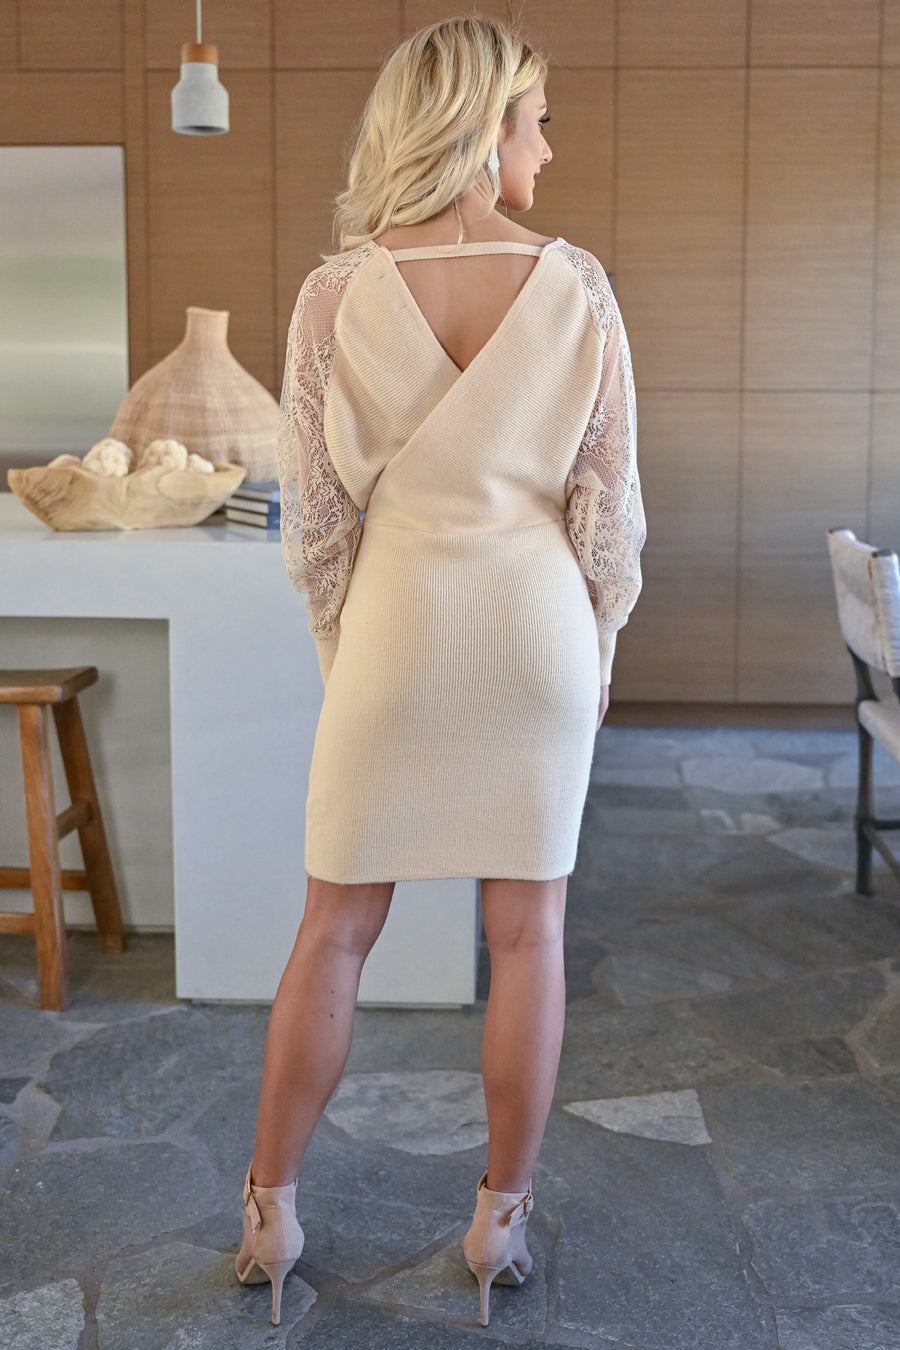 So Romantic Wrap Dress - Cream womens trendy long lace sleeve fitted skirt ribbed dress closet candy front